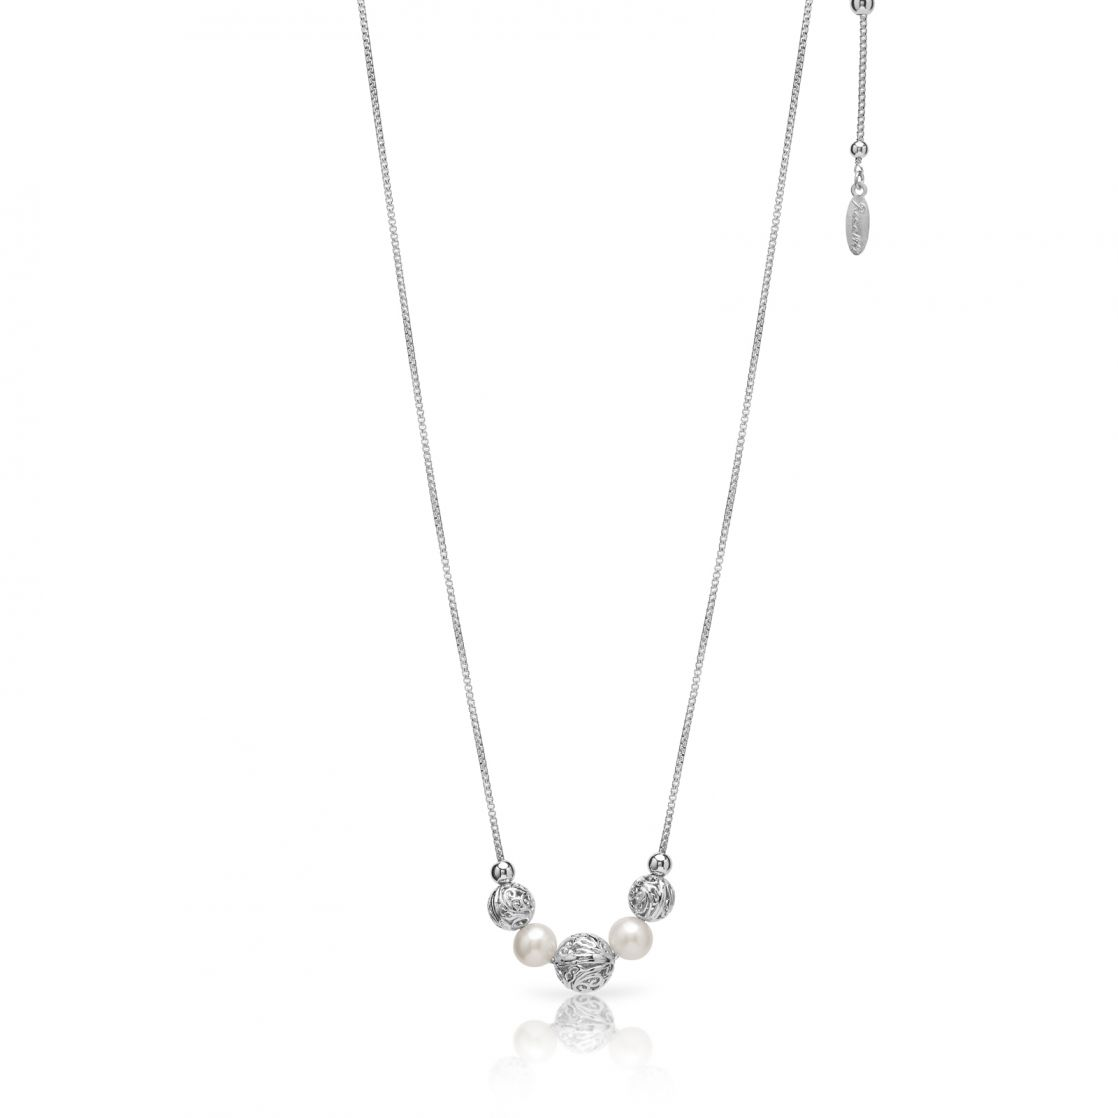 Sliding necklace with pearls